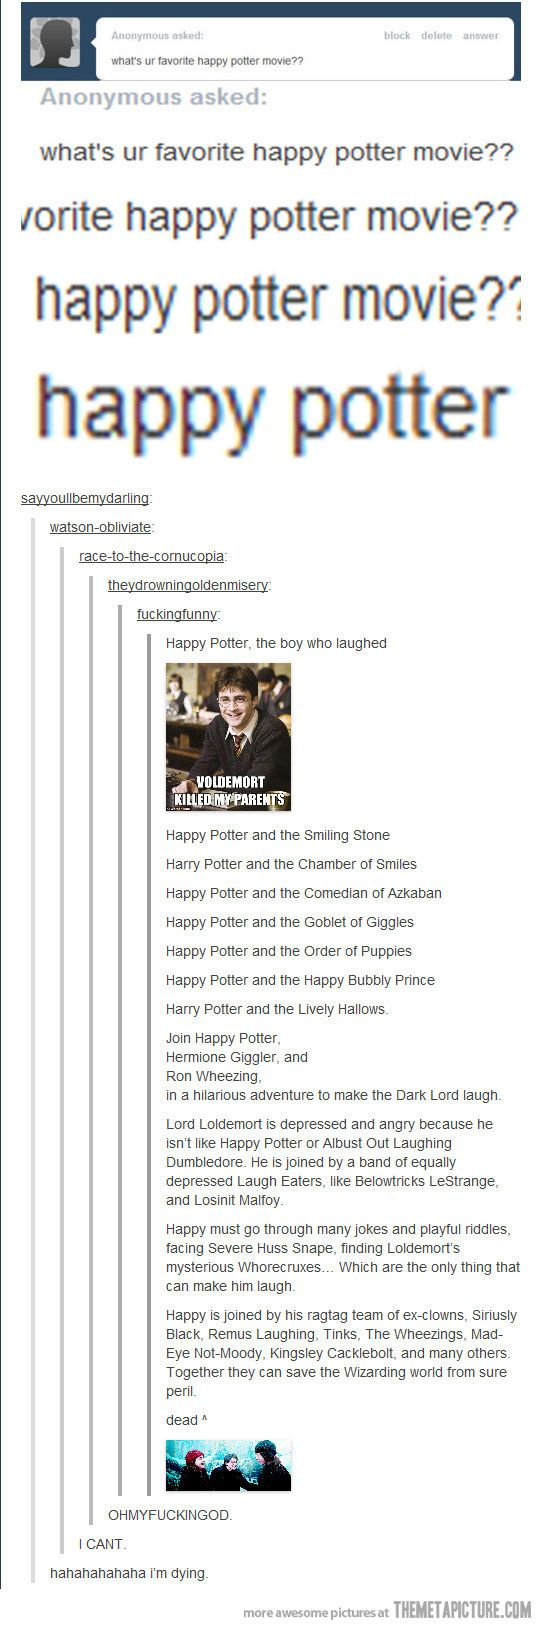 Happy Potter. This is fantastic.